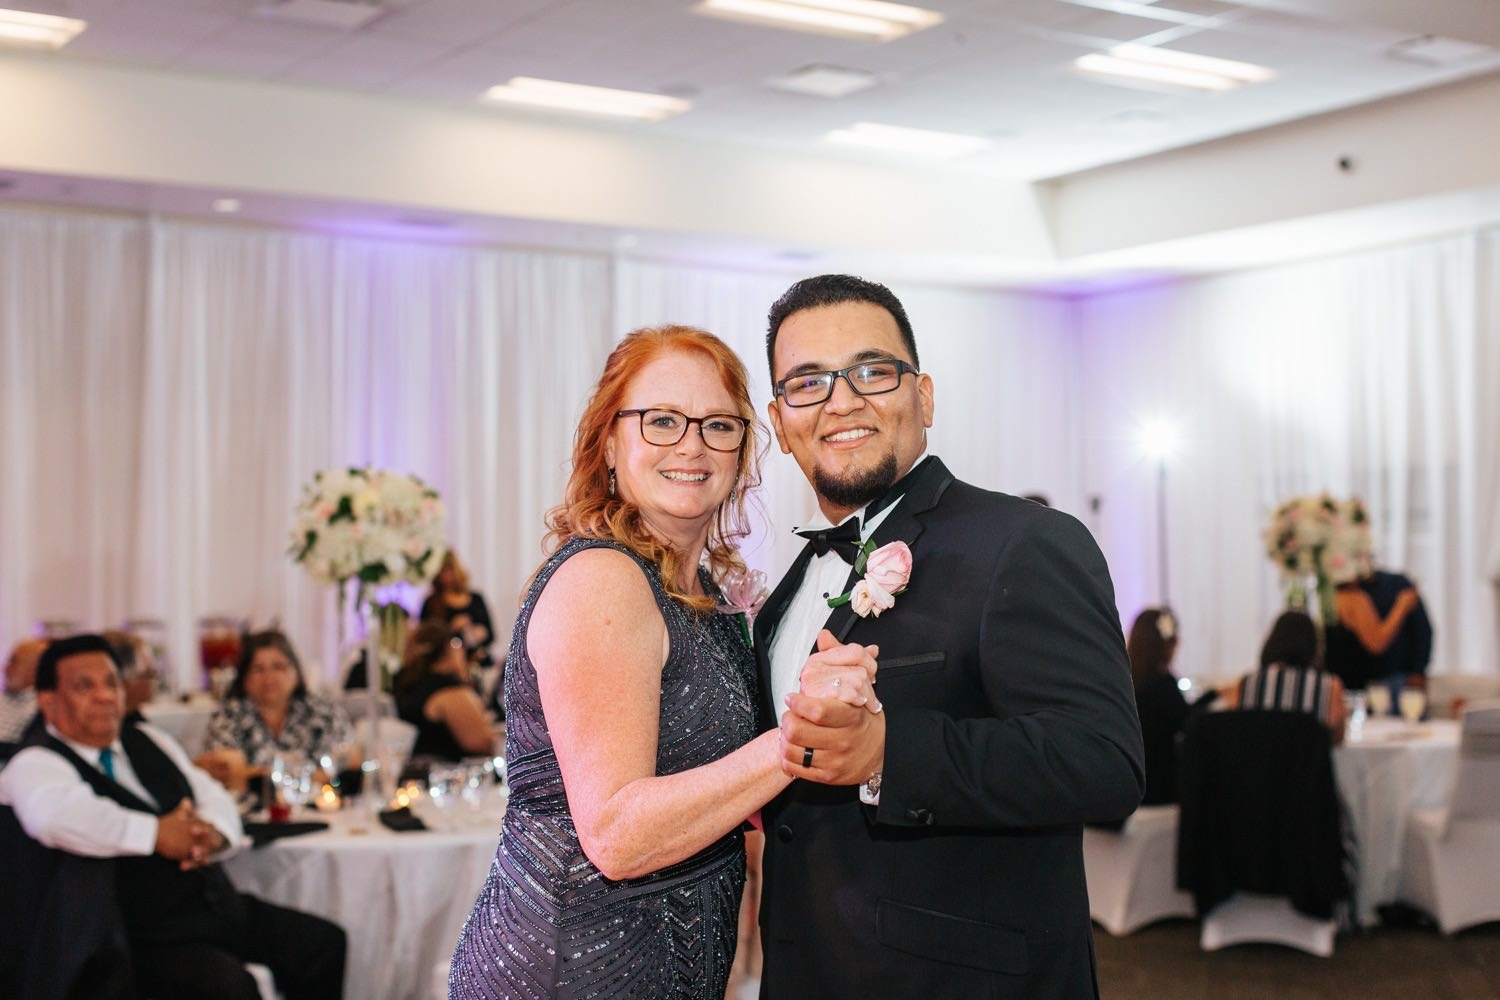 Groom dances with brides mom - https://brittneyhannonphotography.com